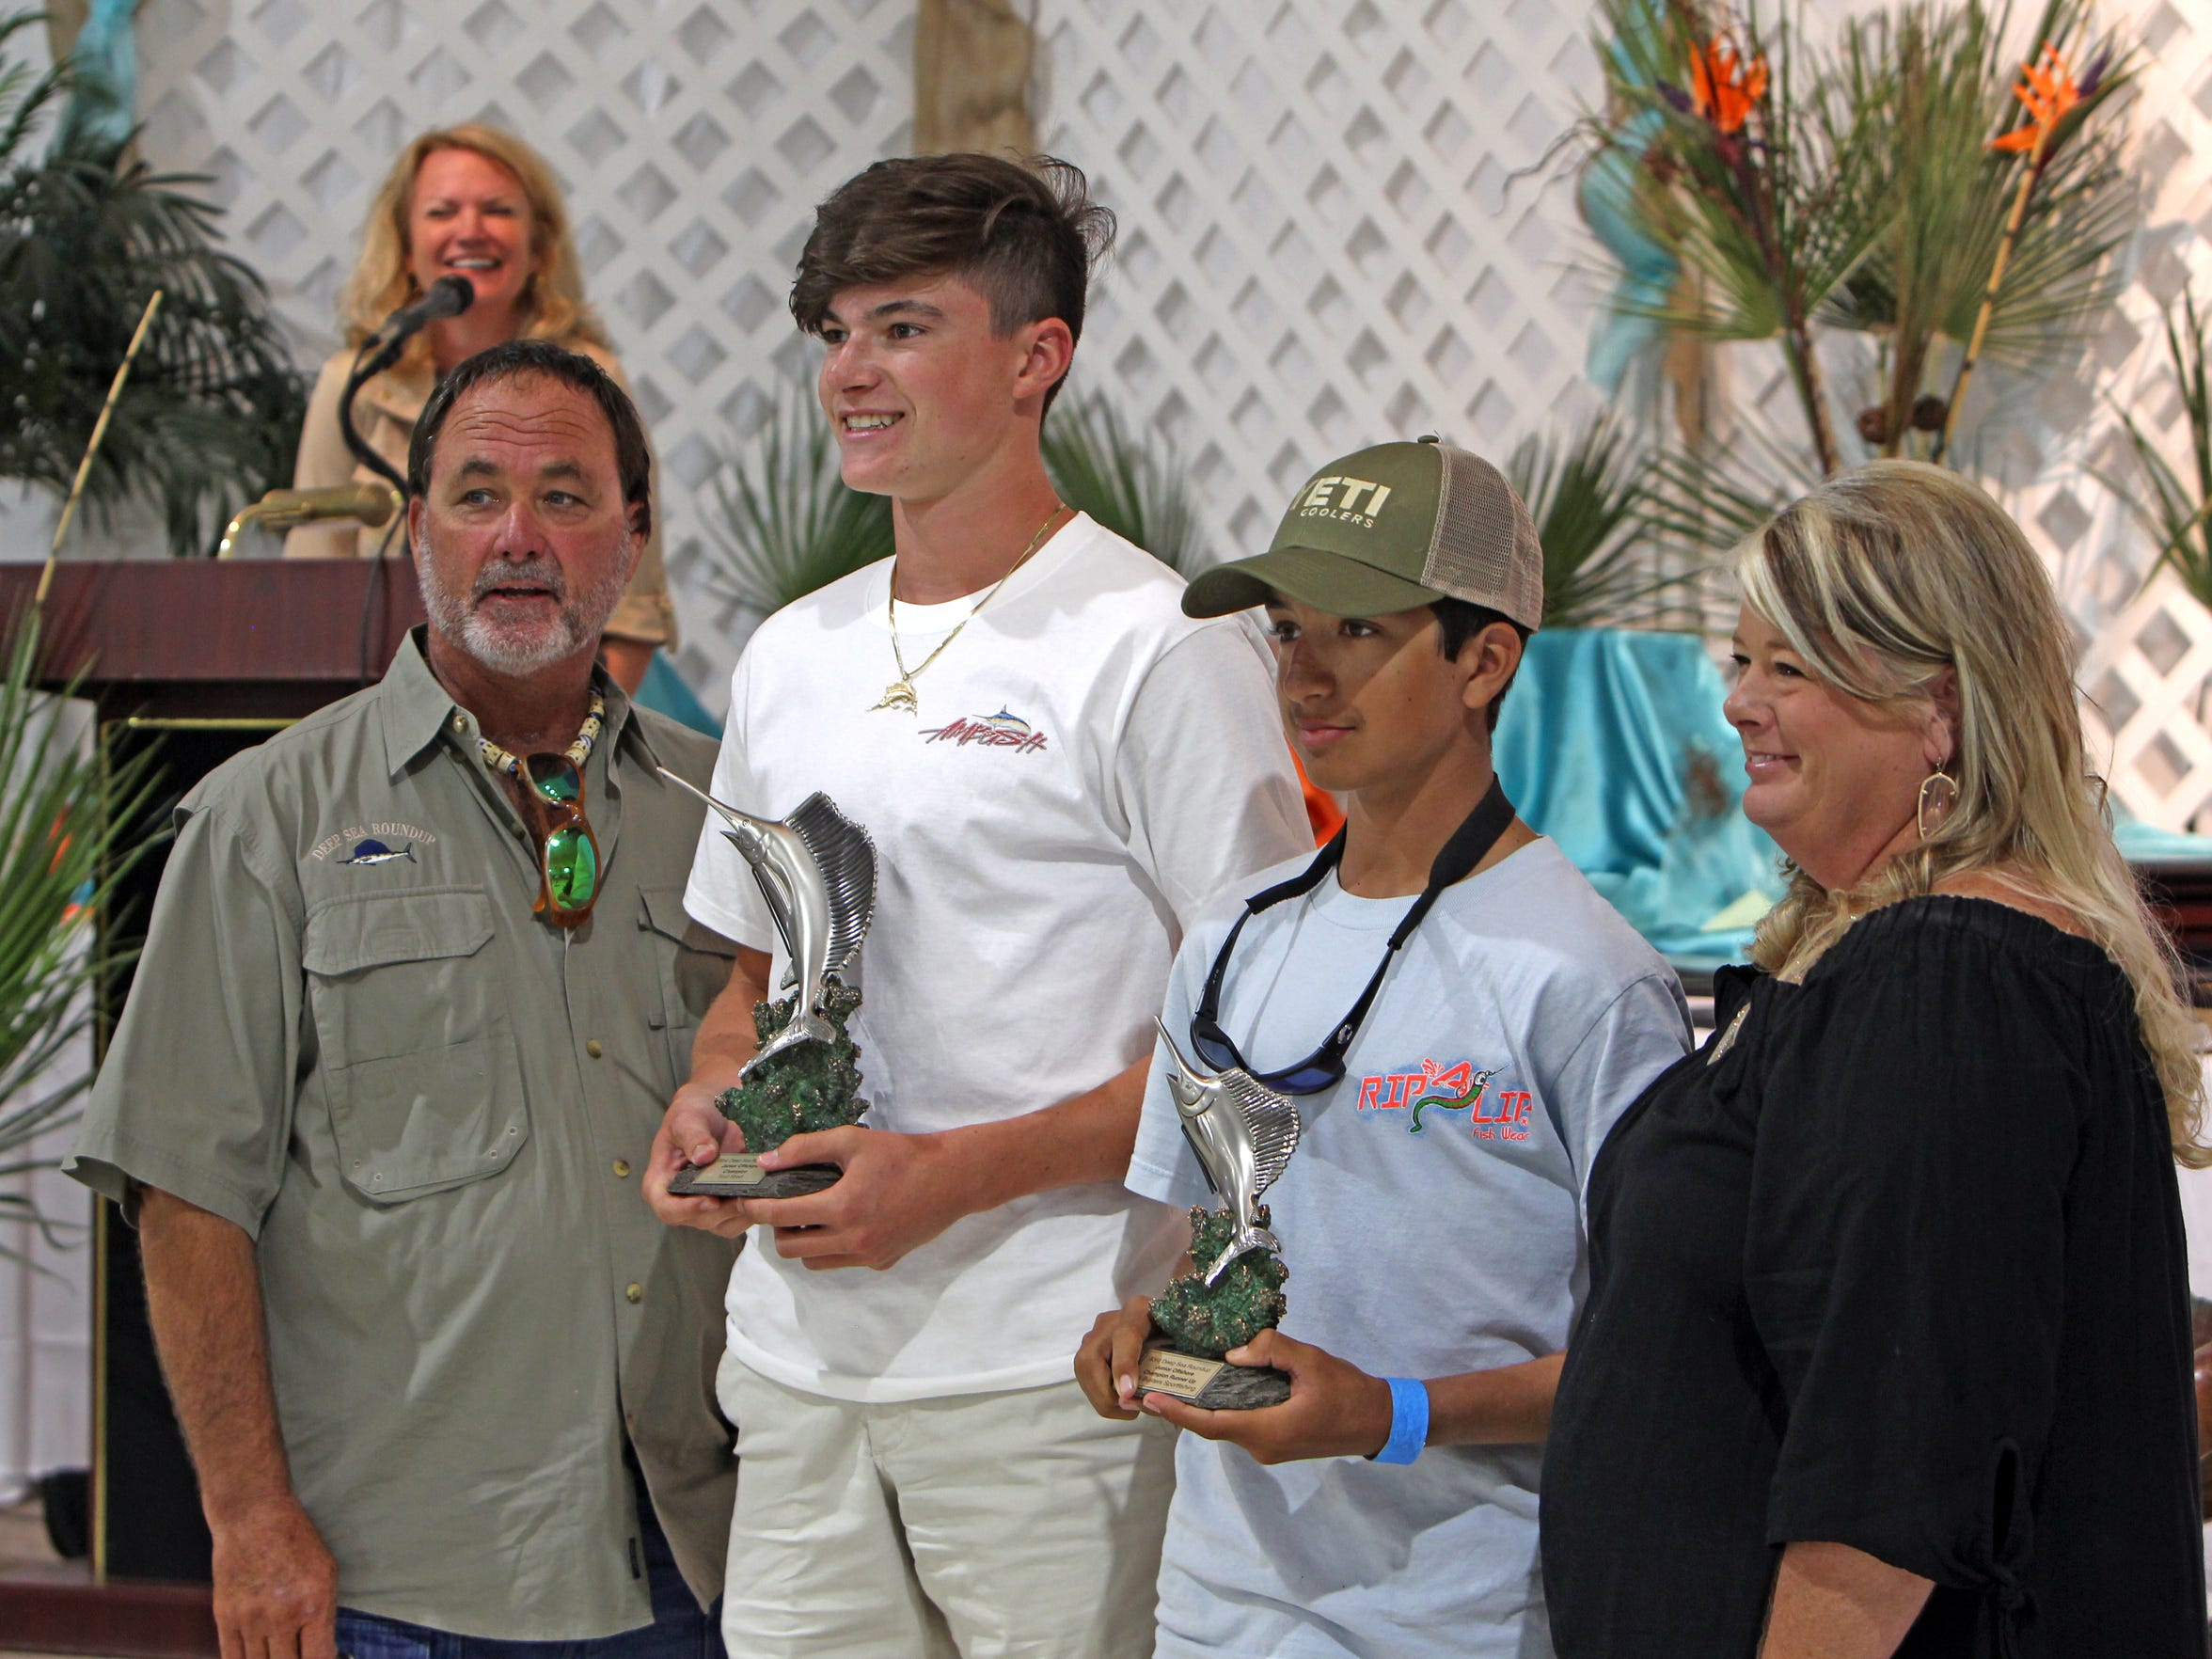 The 83rd Deep Sea Roundup Junior Offshore Grand Champion is Mason Furlow, on left with trophy, and runner-up is Cooper Alvarez.